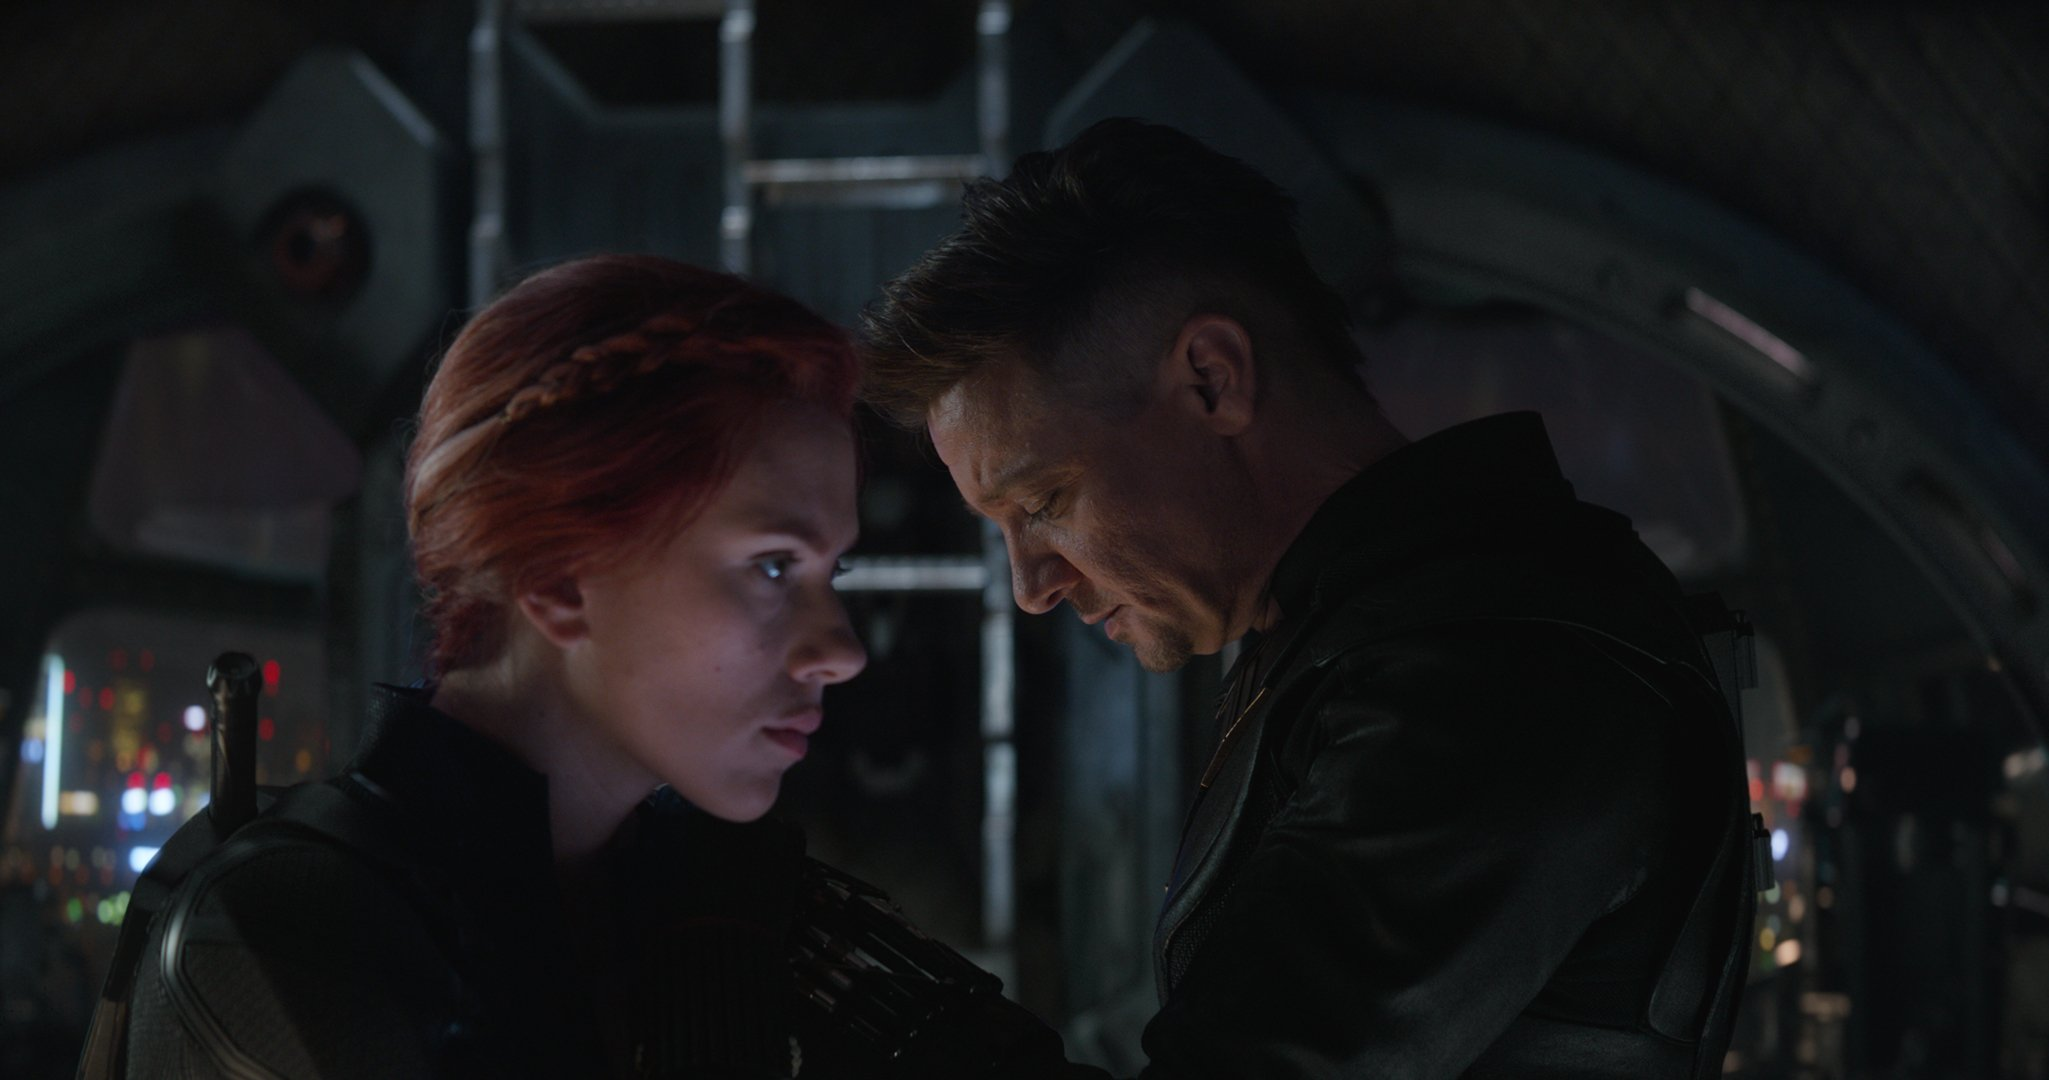 Photo du film Avengers: Endgame avec Black Widow et Hawkeye